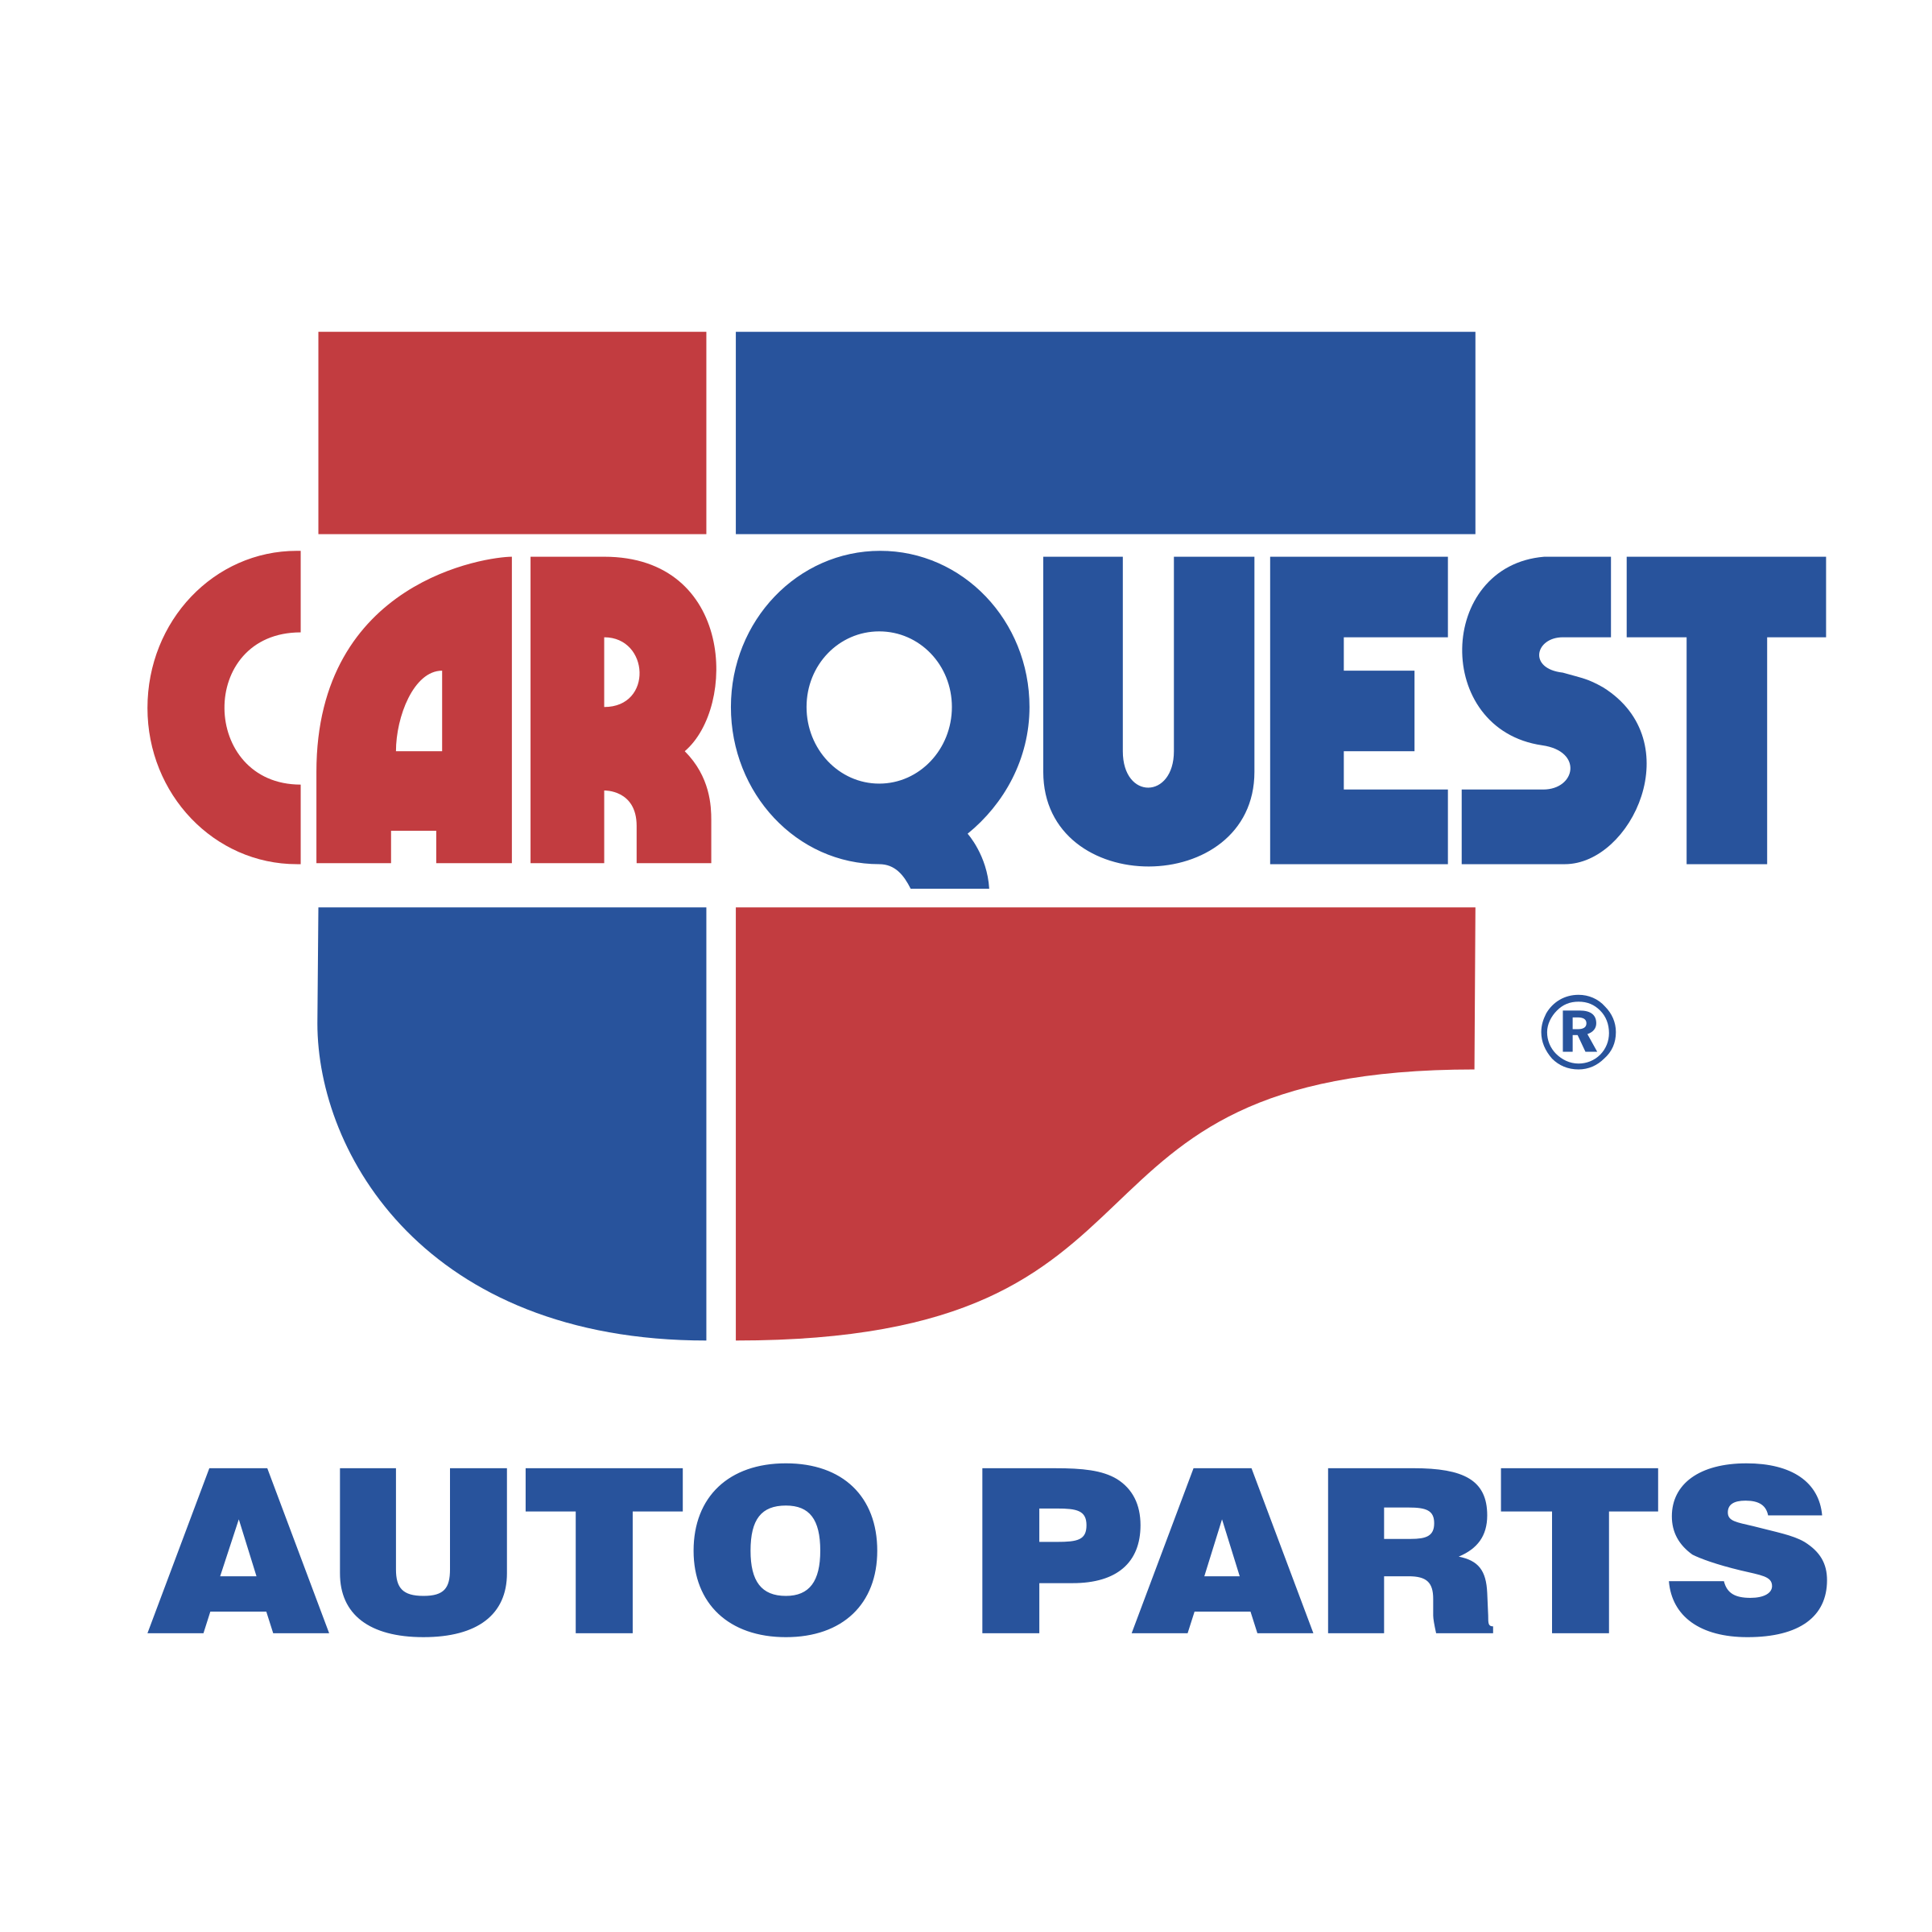 Carquest Logo Png Transparent Svg Vector Freebie Supply